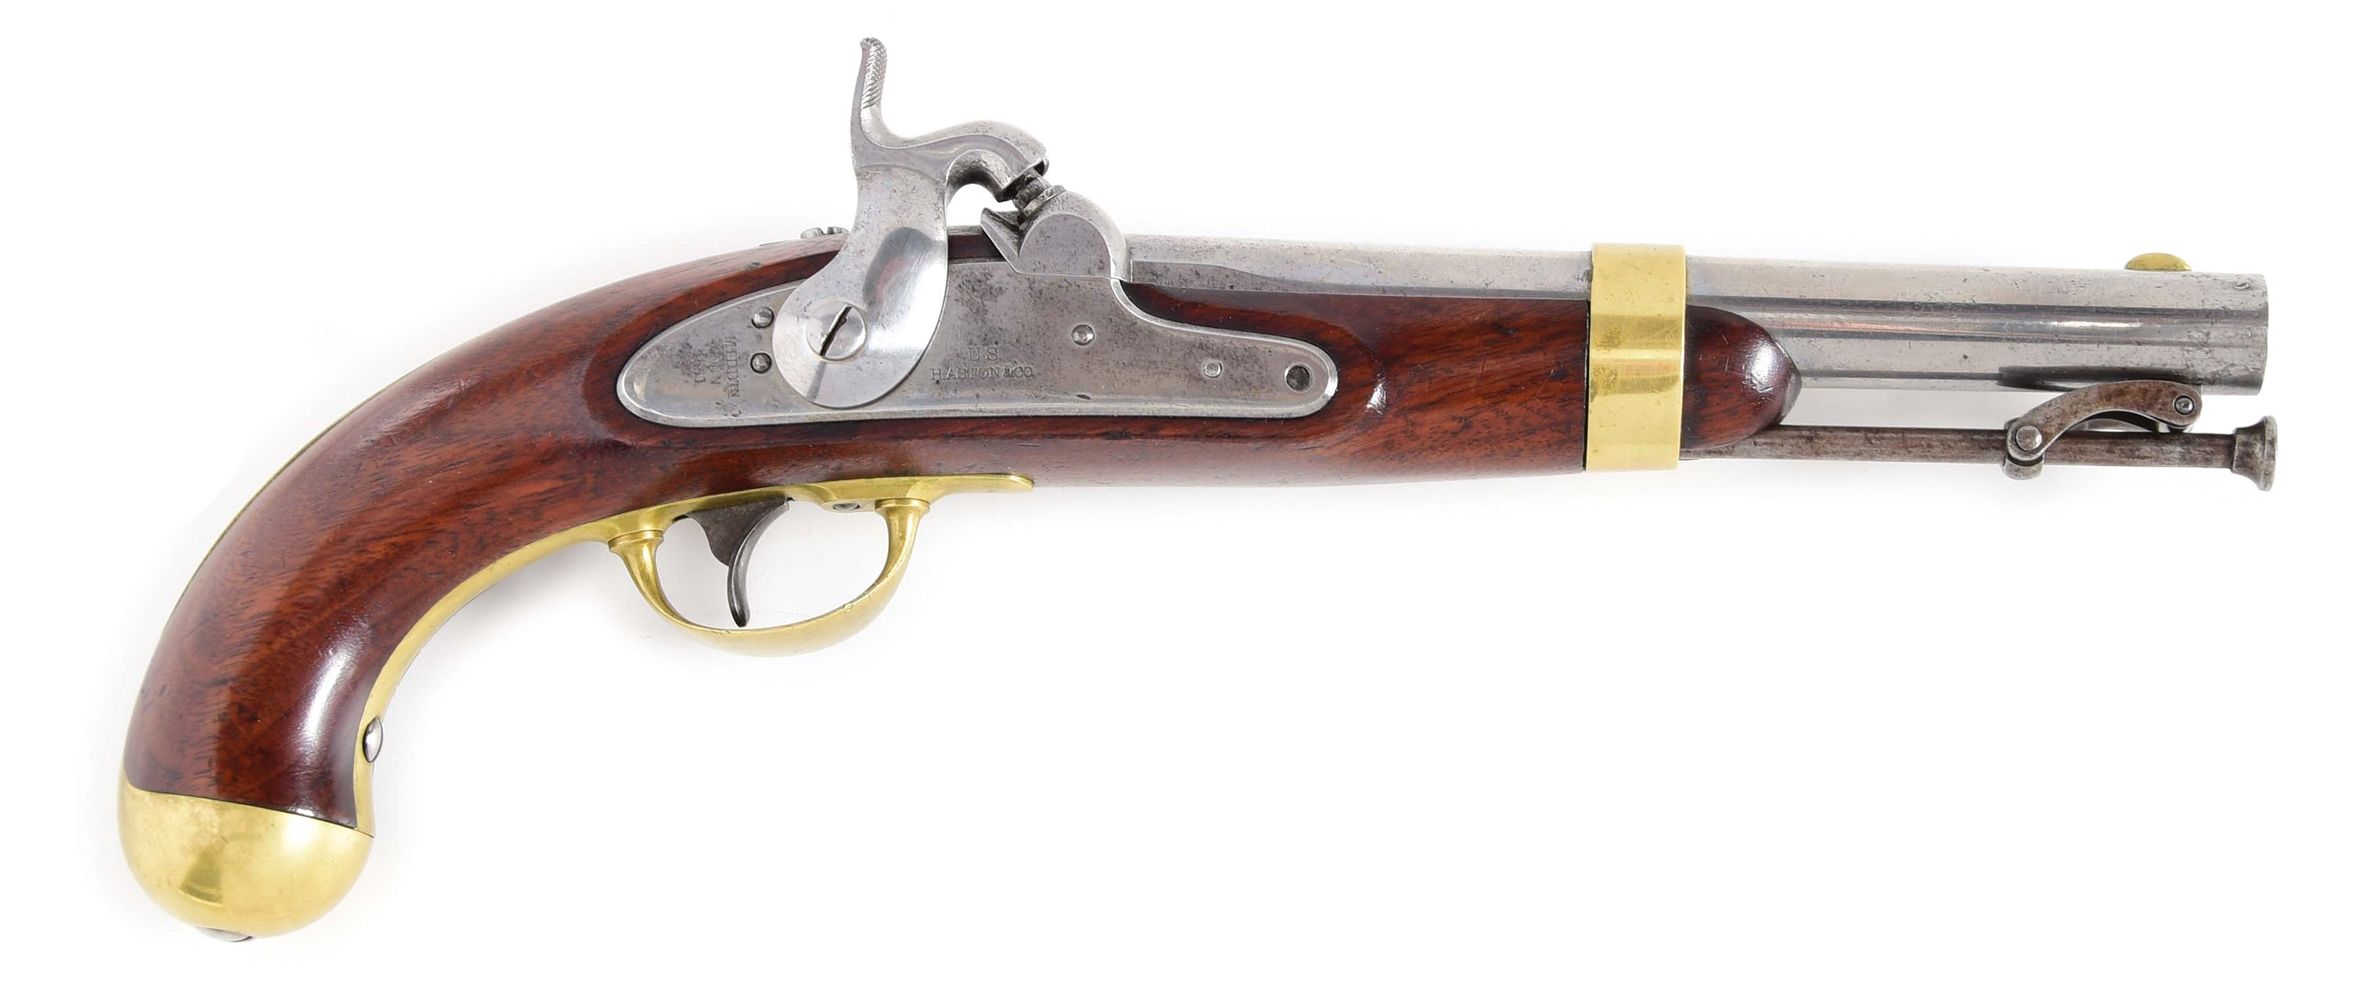 (A) A US MODEL 1842 SINGLE SHOT PERCUSSION PISTOL BY HENRY ASTON DATED 1851.